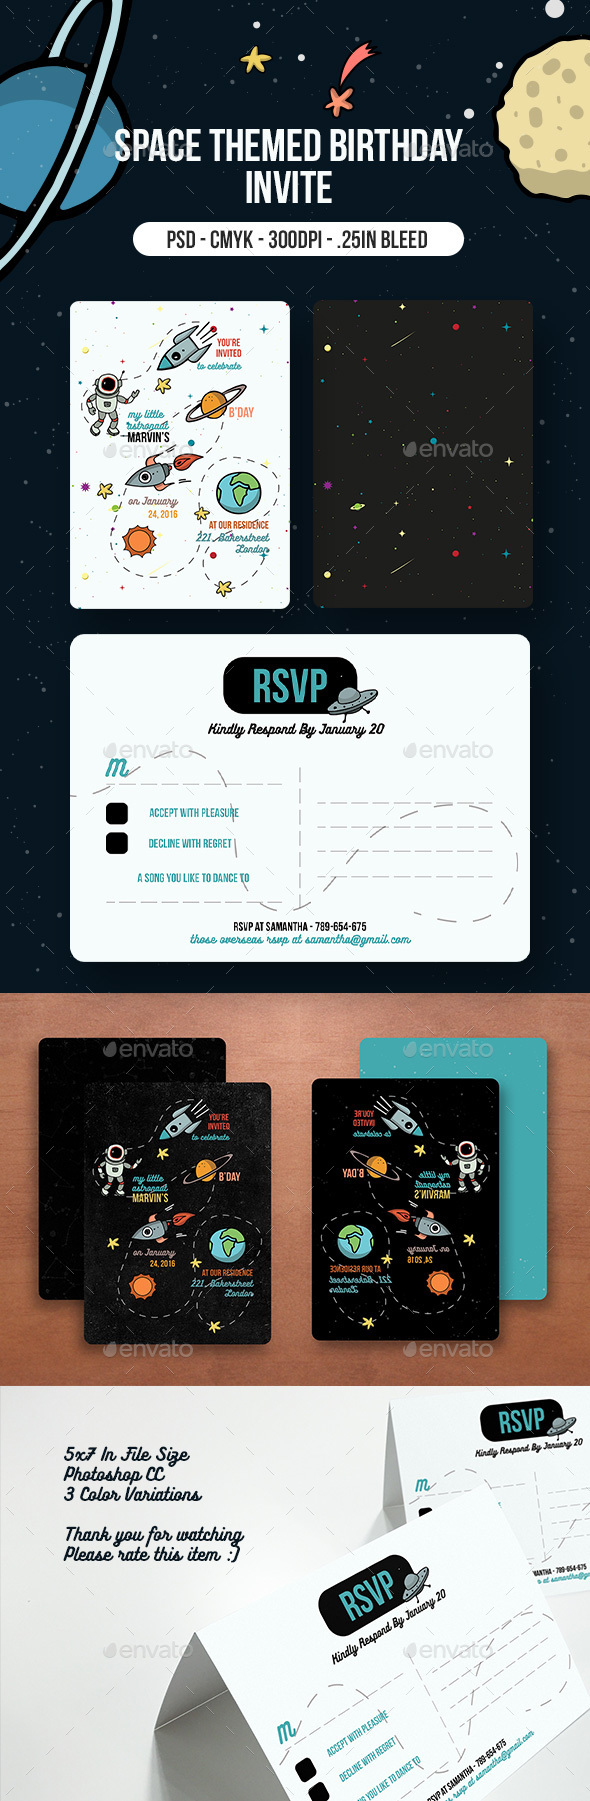 Space Themed Birthday Party Invitation - Birthday Greeting Cards